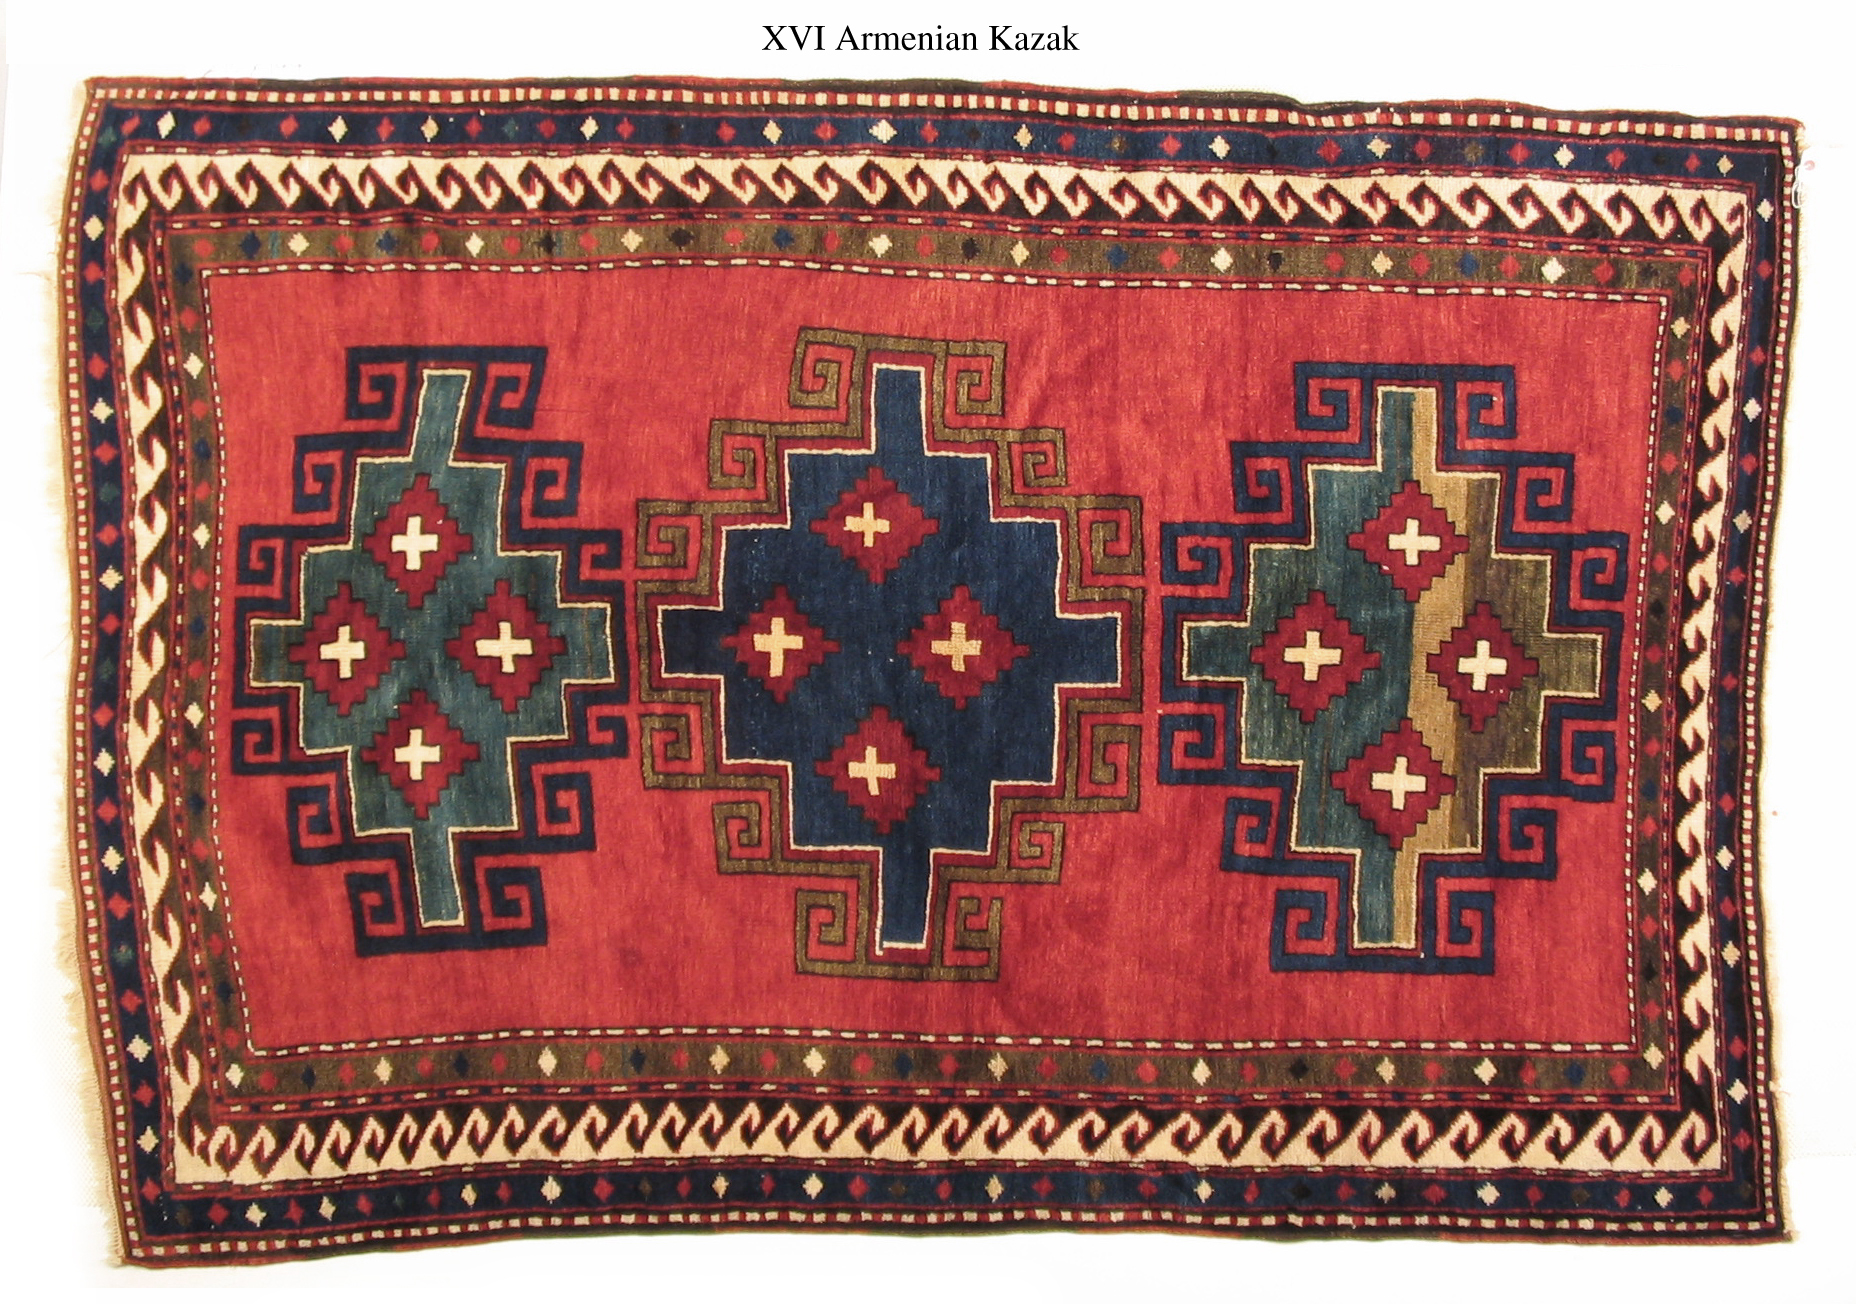 Armenian Carpet Kazak